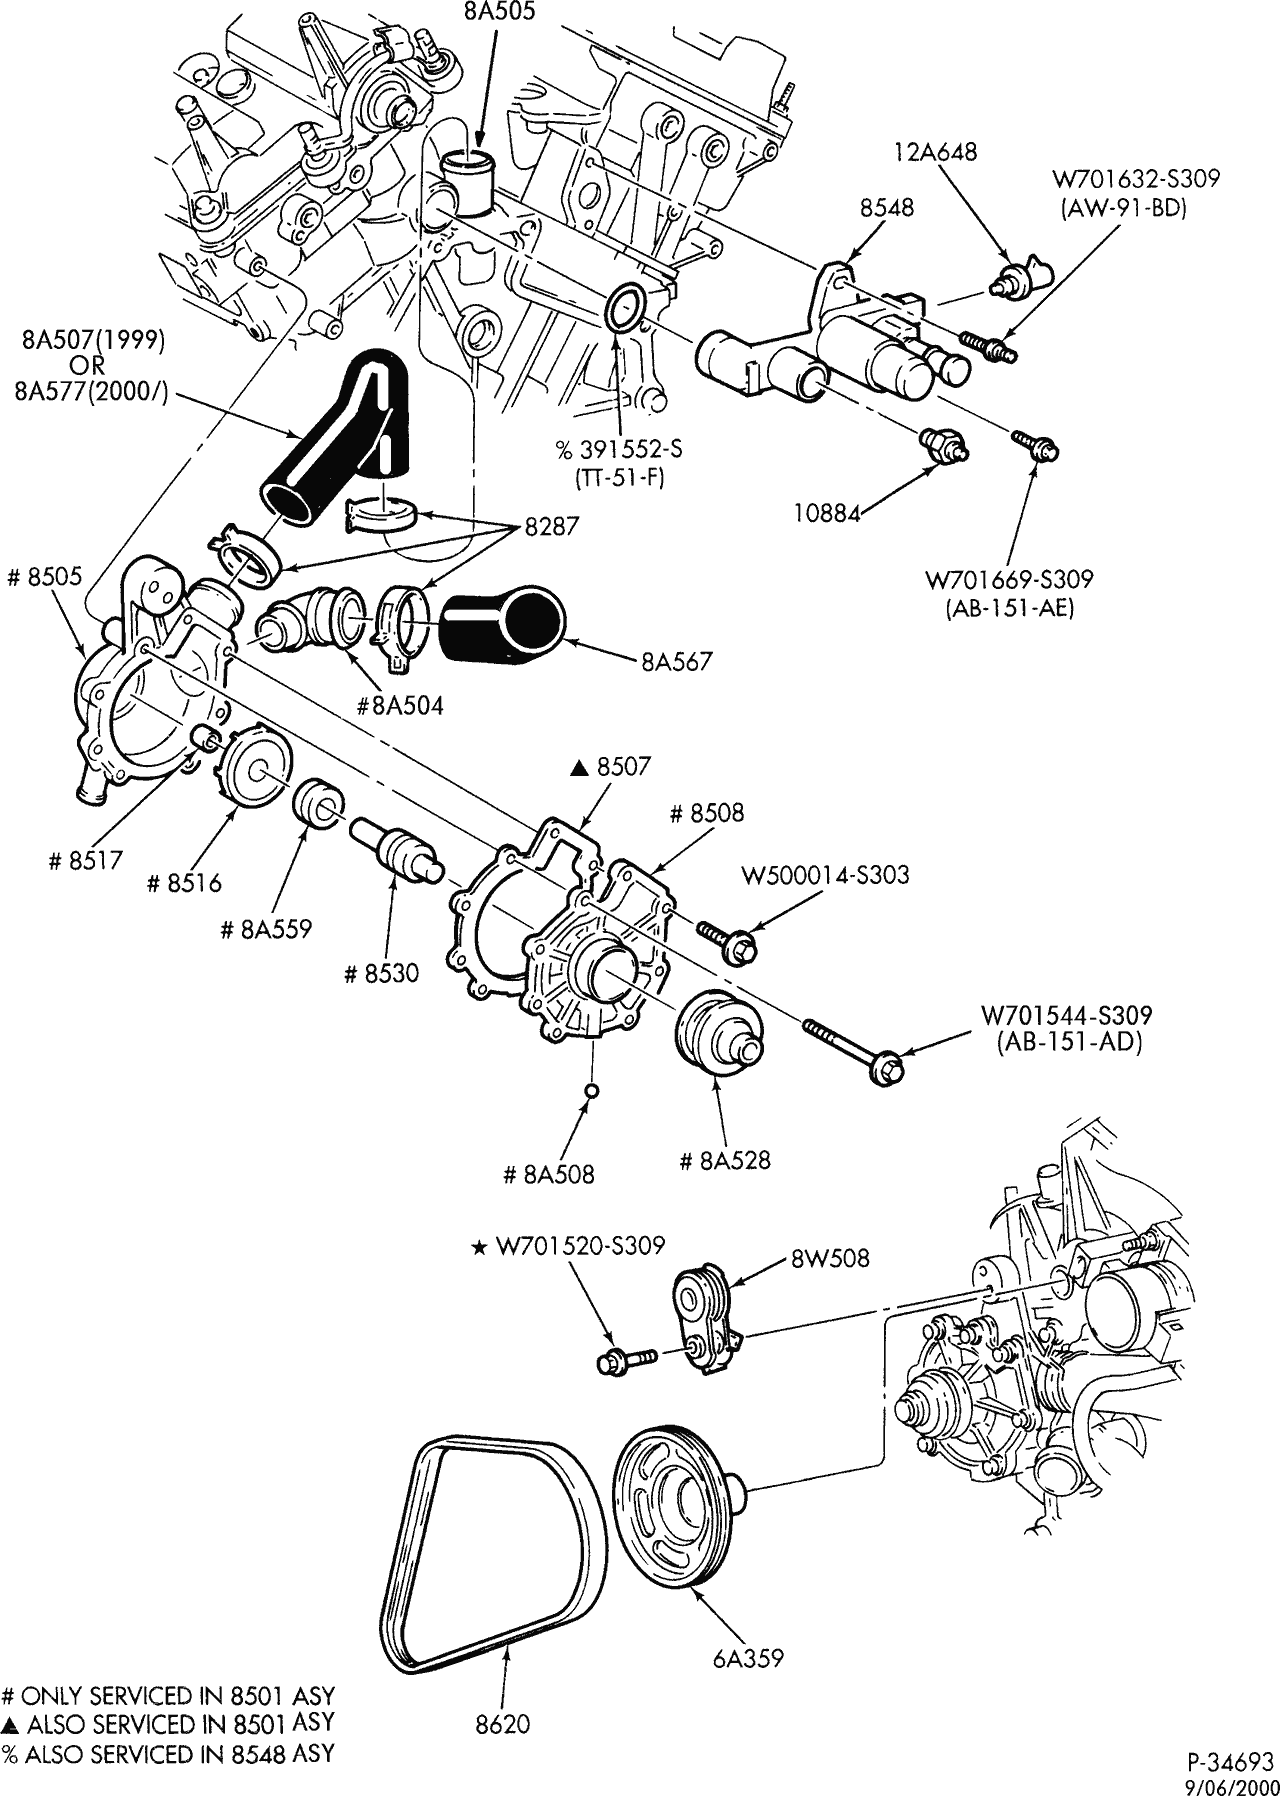 99 ford contour engine diagram  99  free engine image for